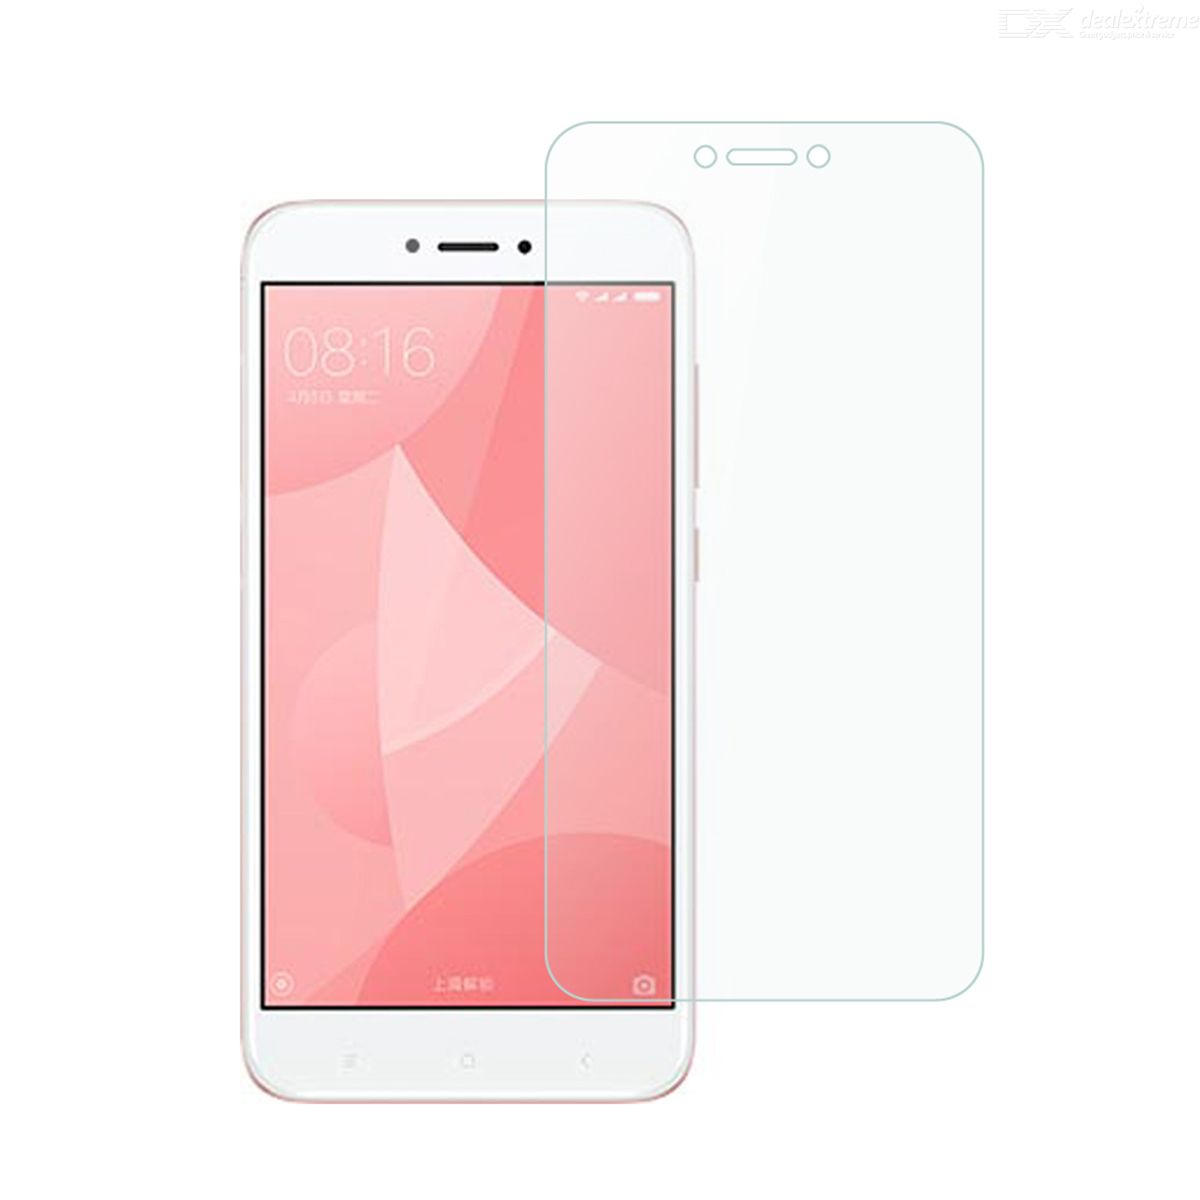 Dealextreme / Dayspirit Tempered Glass Screen Protector for Xiaomi Redmi 4X